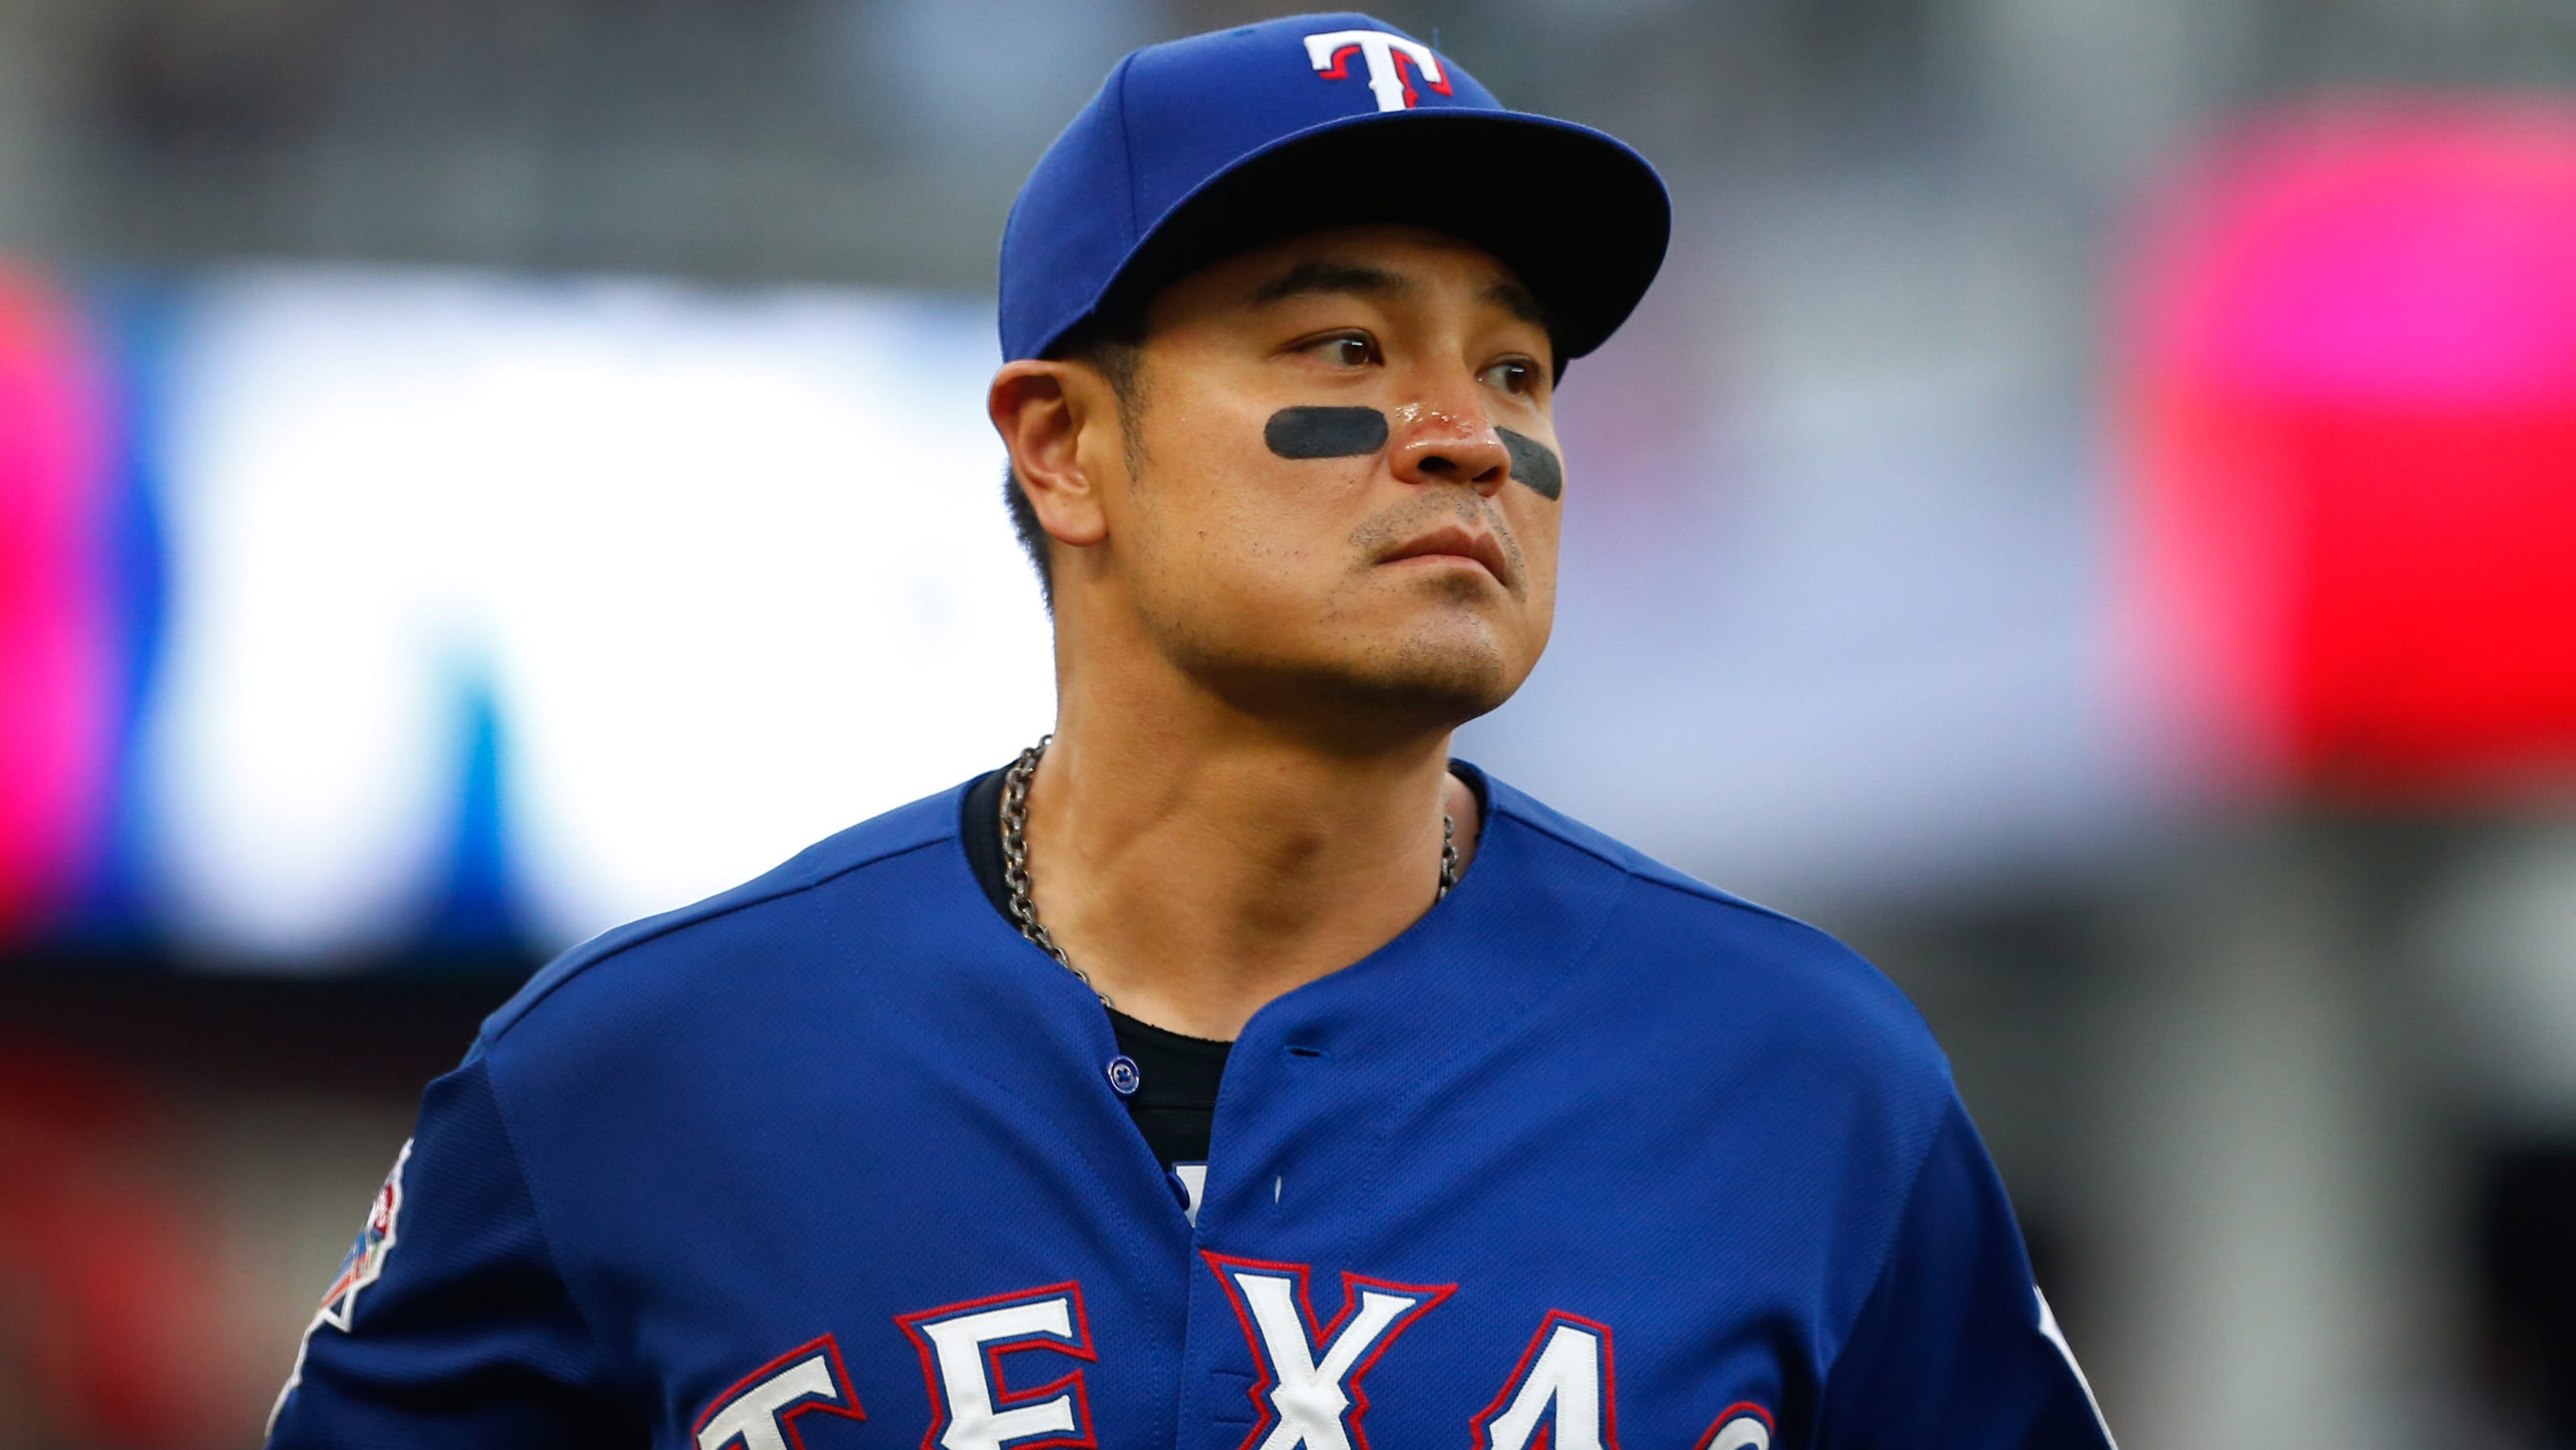 Shin-Soo Choo giving $1,000 to every player in Rangers' farm system